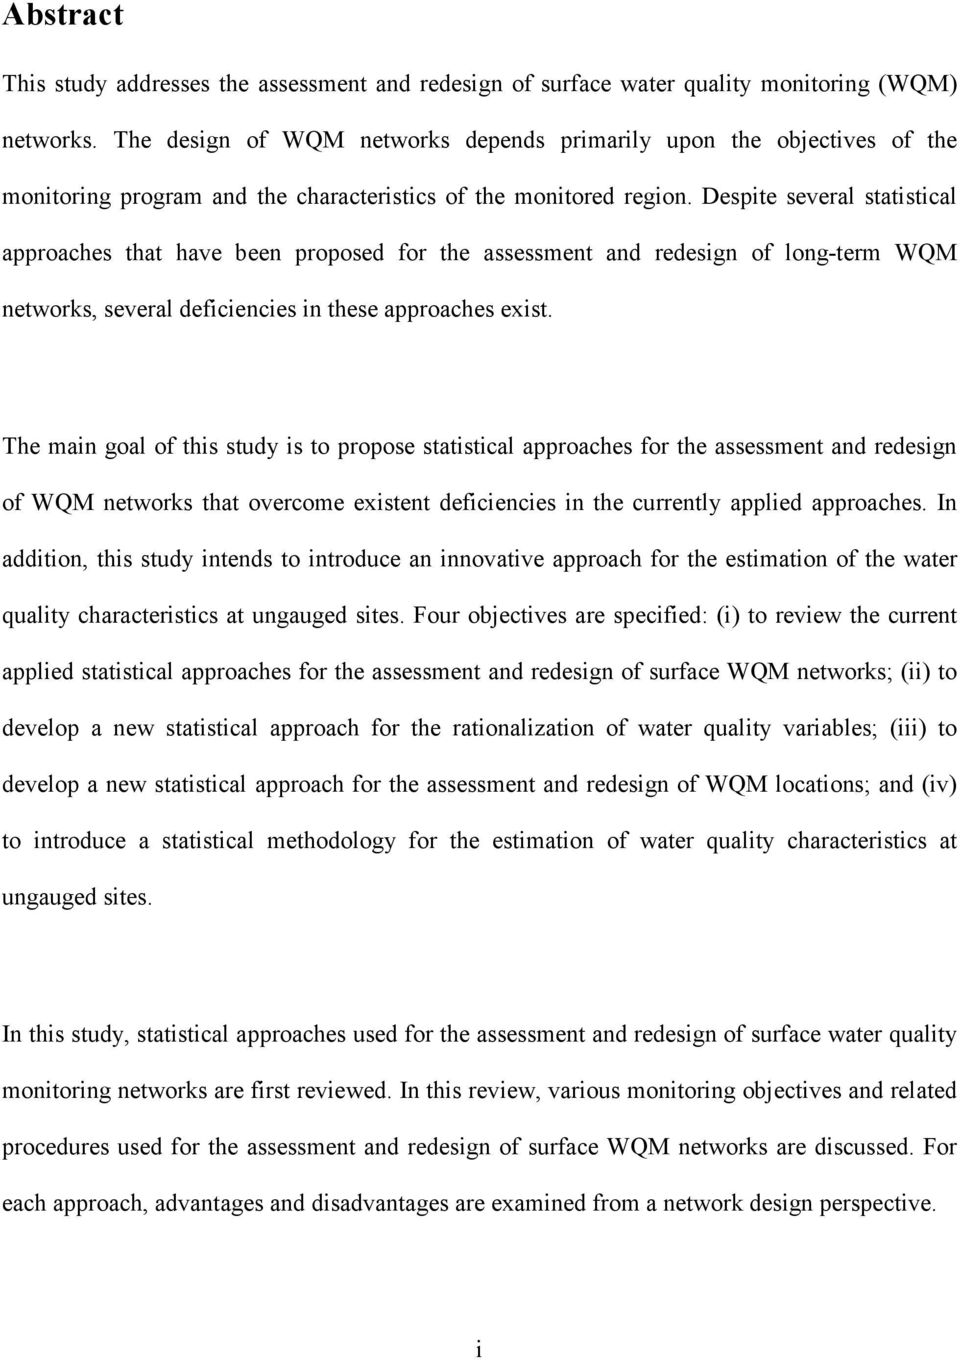 Despite several statistical approaches that have been proposed for the assessment and redesign of long-term WQM networks, several deficiencies in these approaches exist.